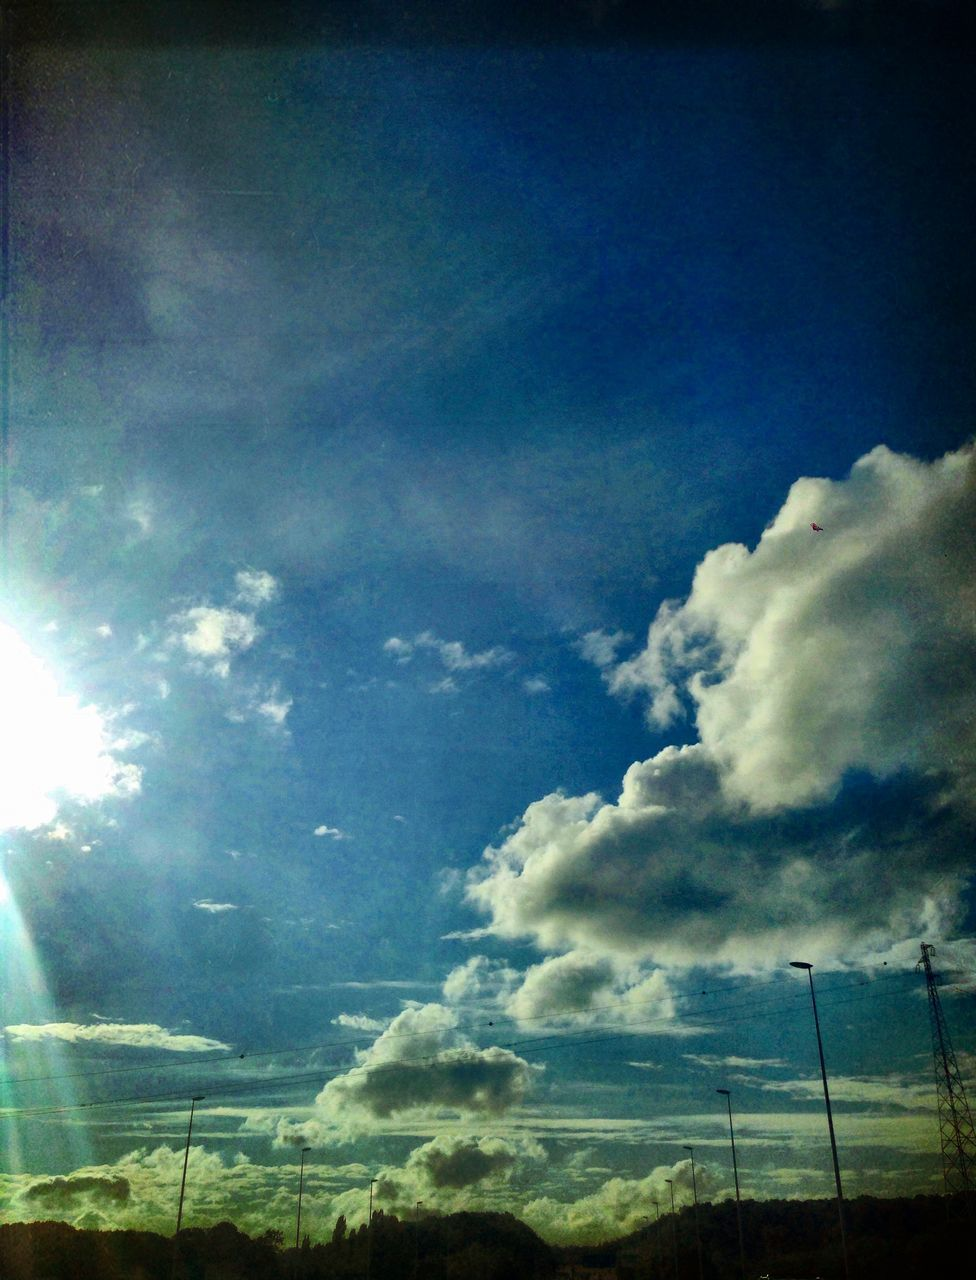 sky, low angle view, no people, nature, beauty in nature, day, tranquility, scenics, cloud - sky, outdoors, blue